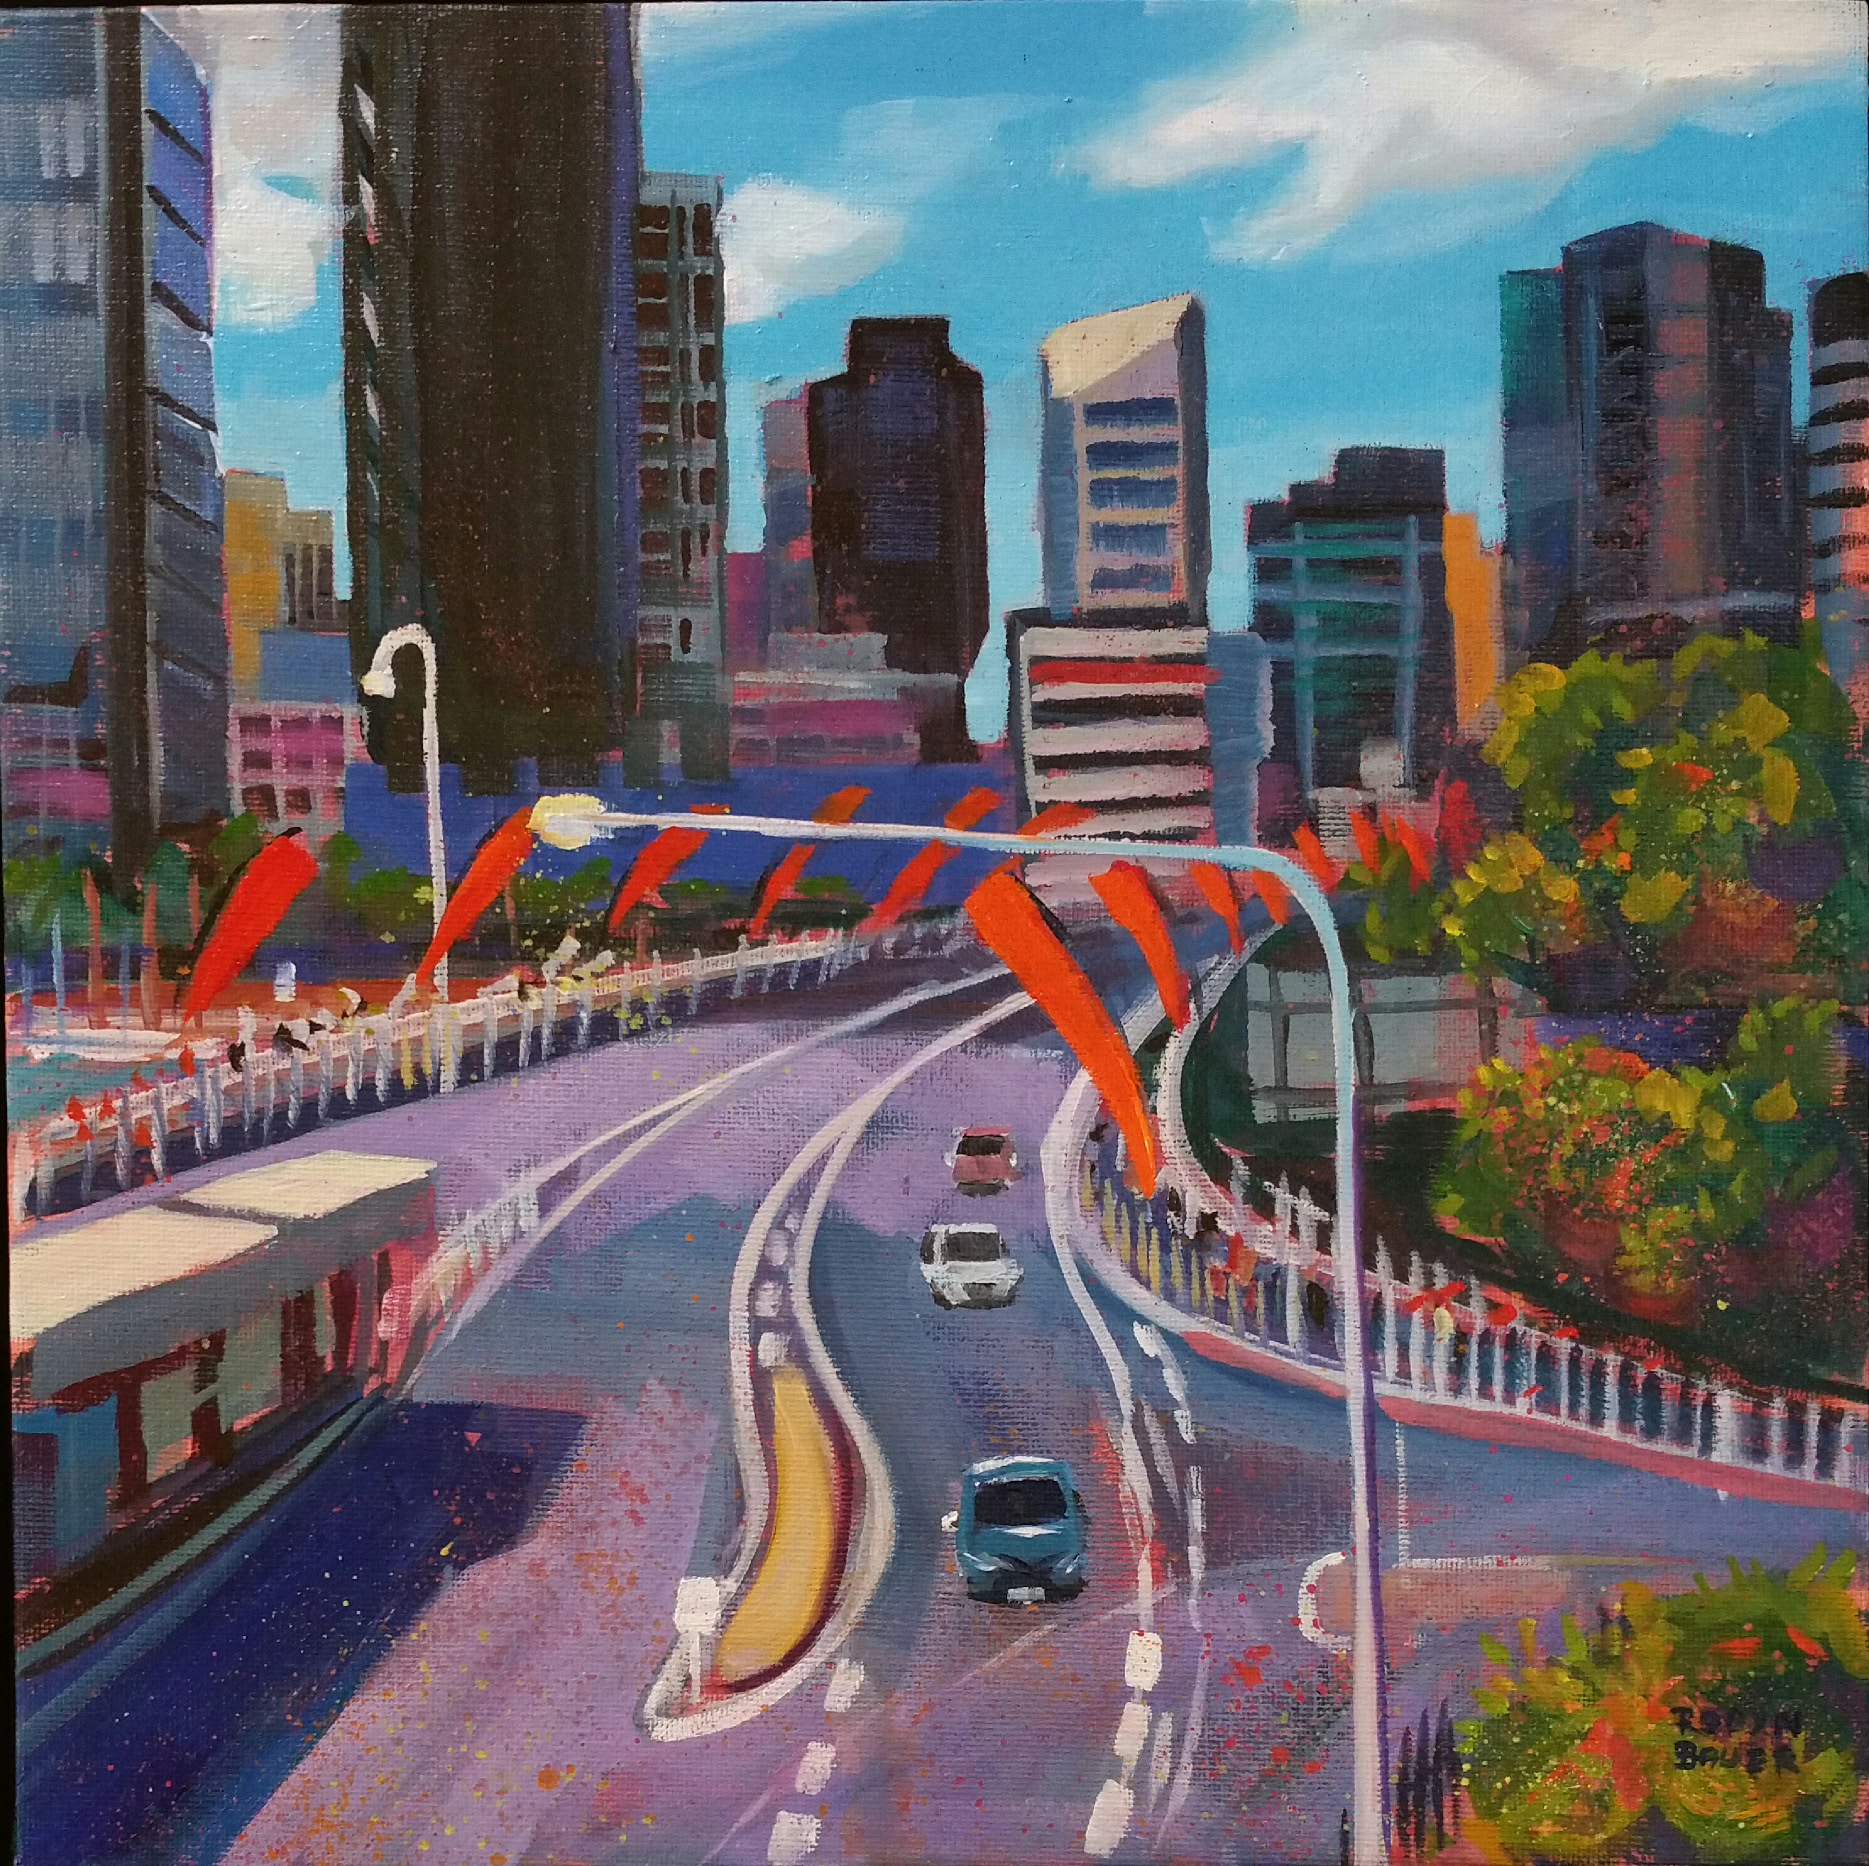 Brisbane loves its banners,Victoria Bridge